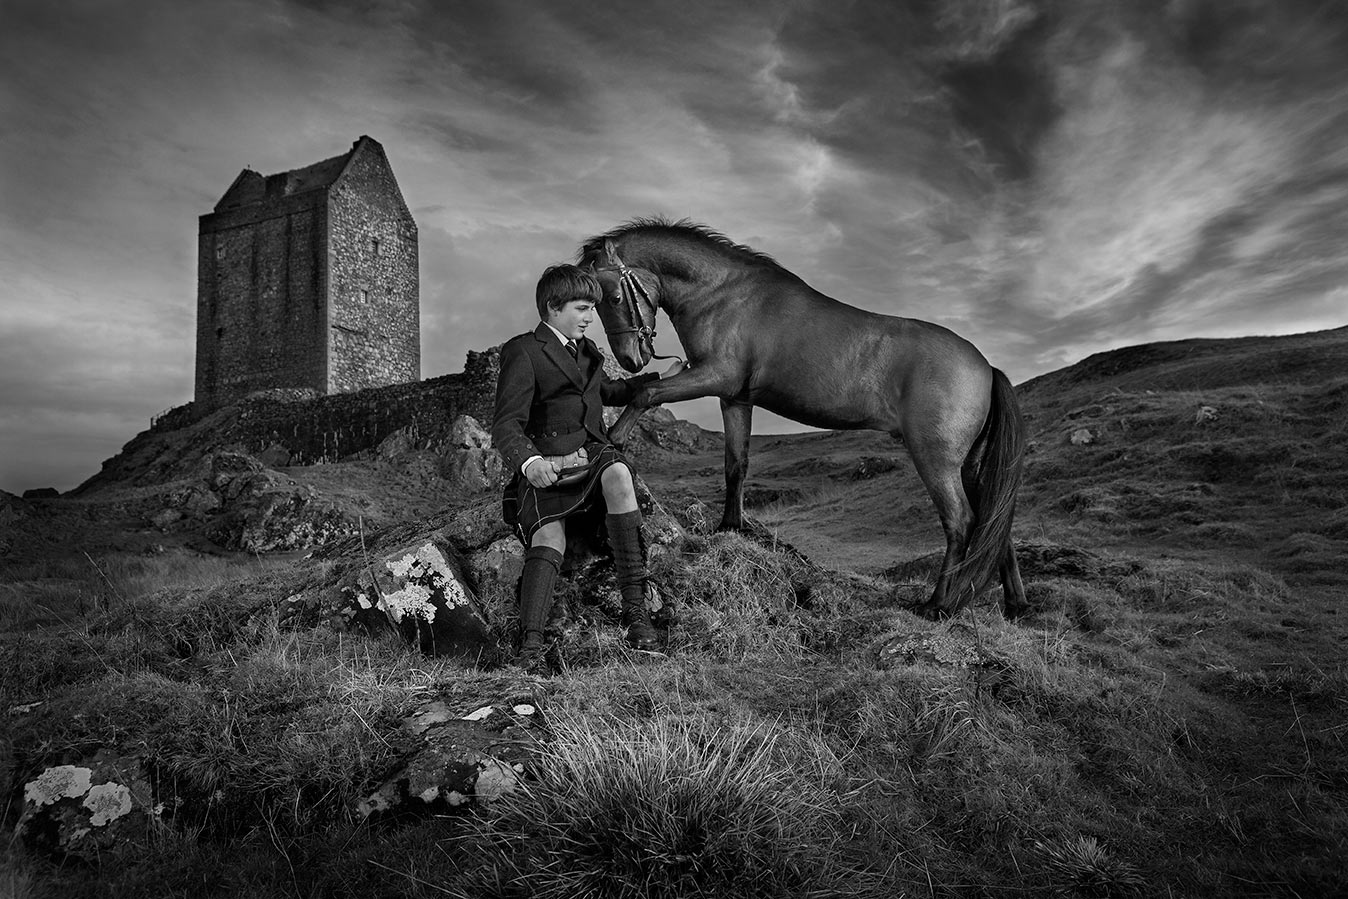 Caspian-Stallion-in-the-Scottish-Highlands-B-W